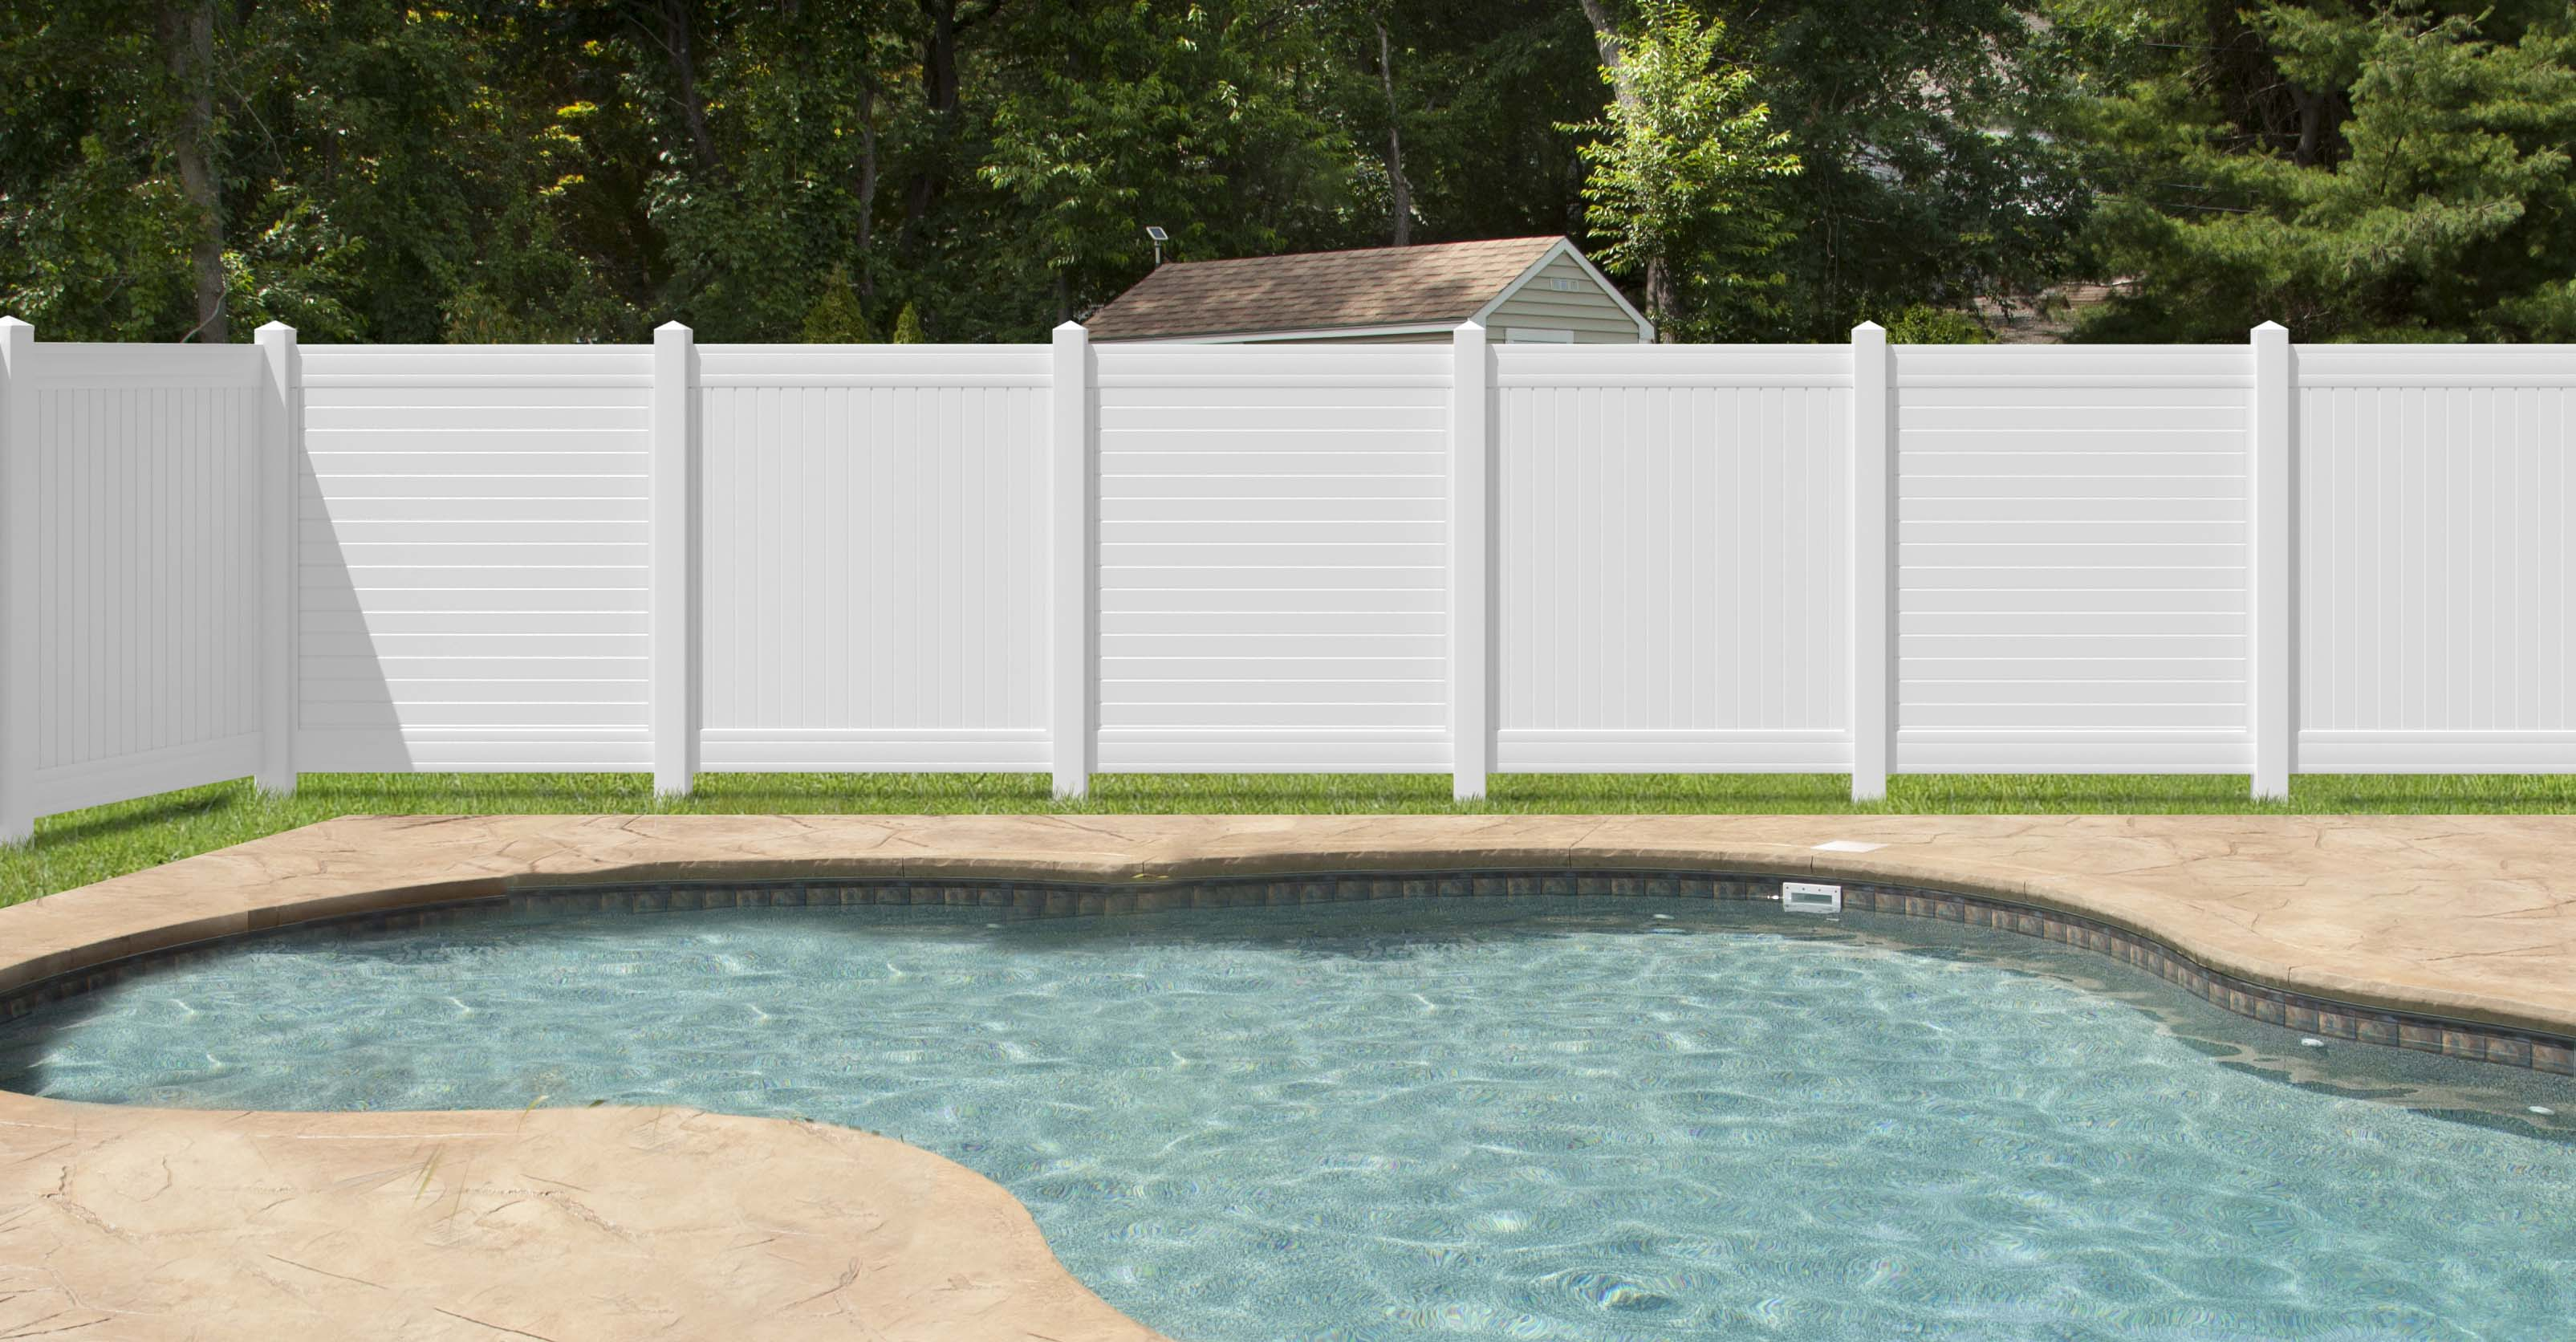 54 How Much Cost Fence Backyard Home Decor with Backyard Fence Cost